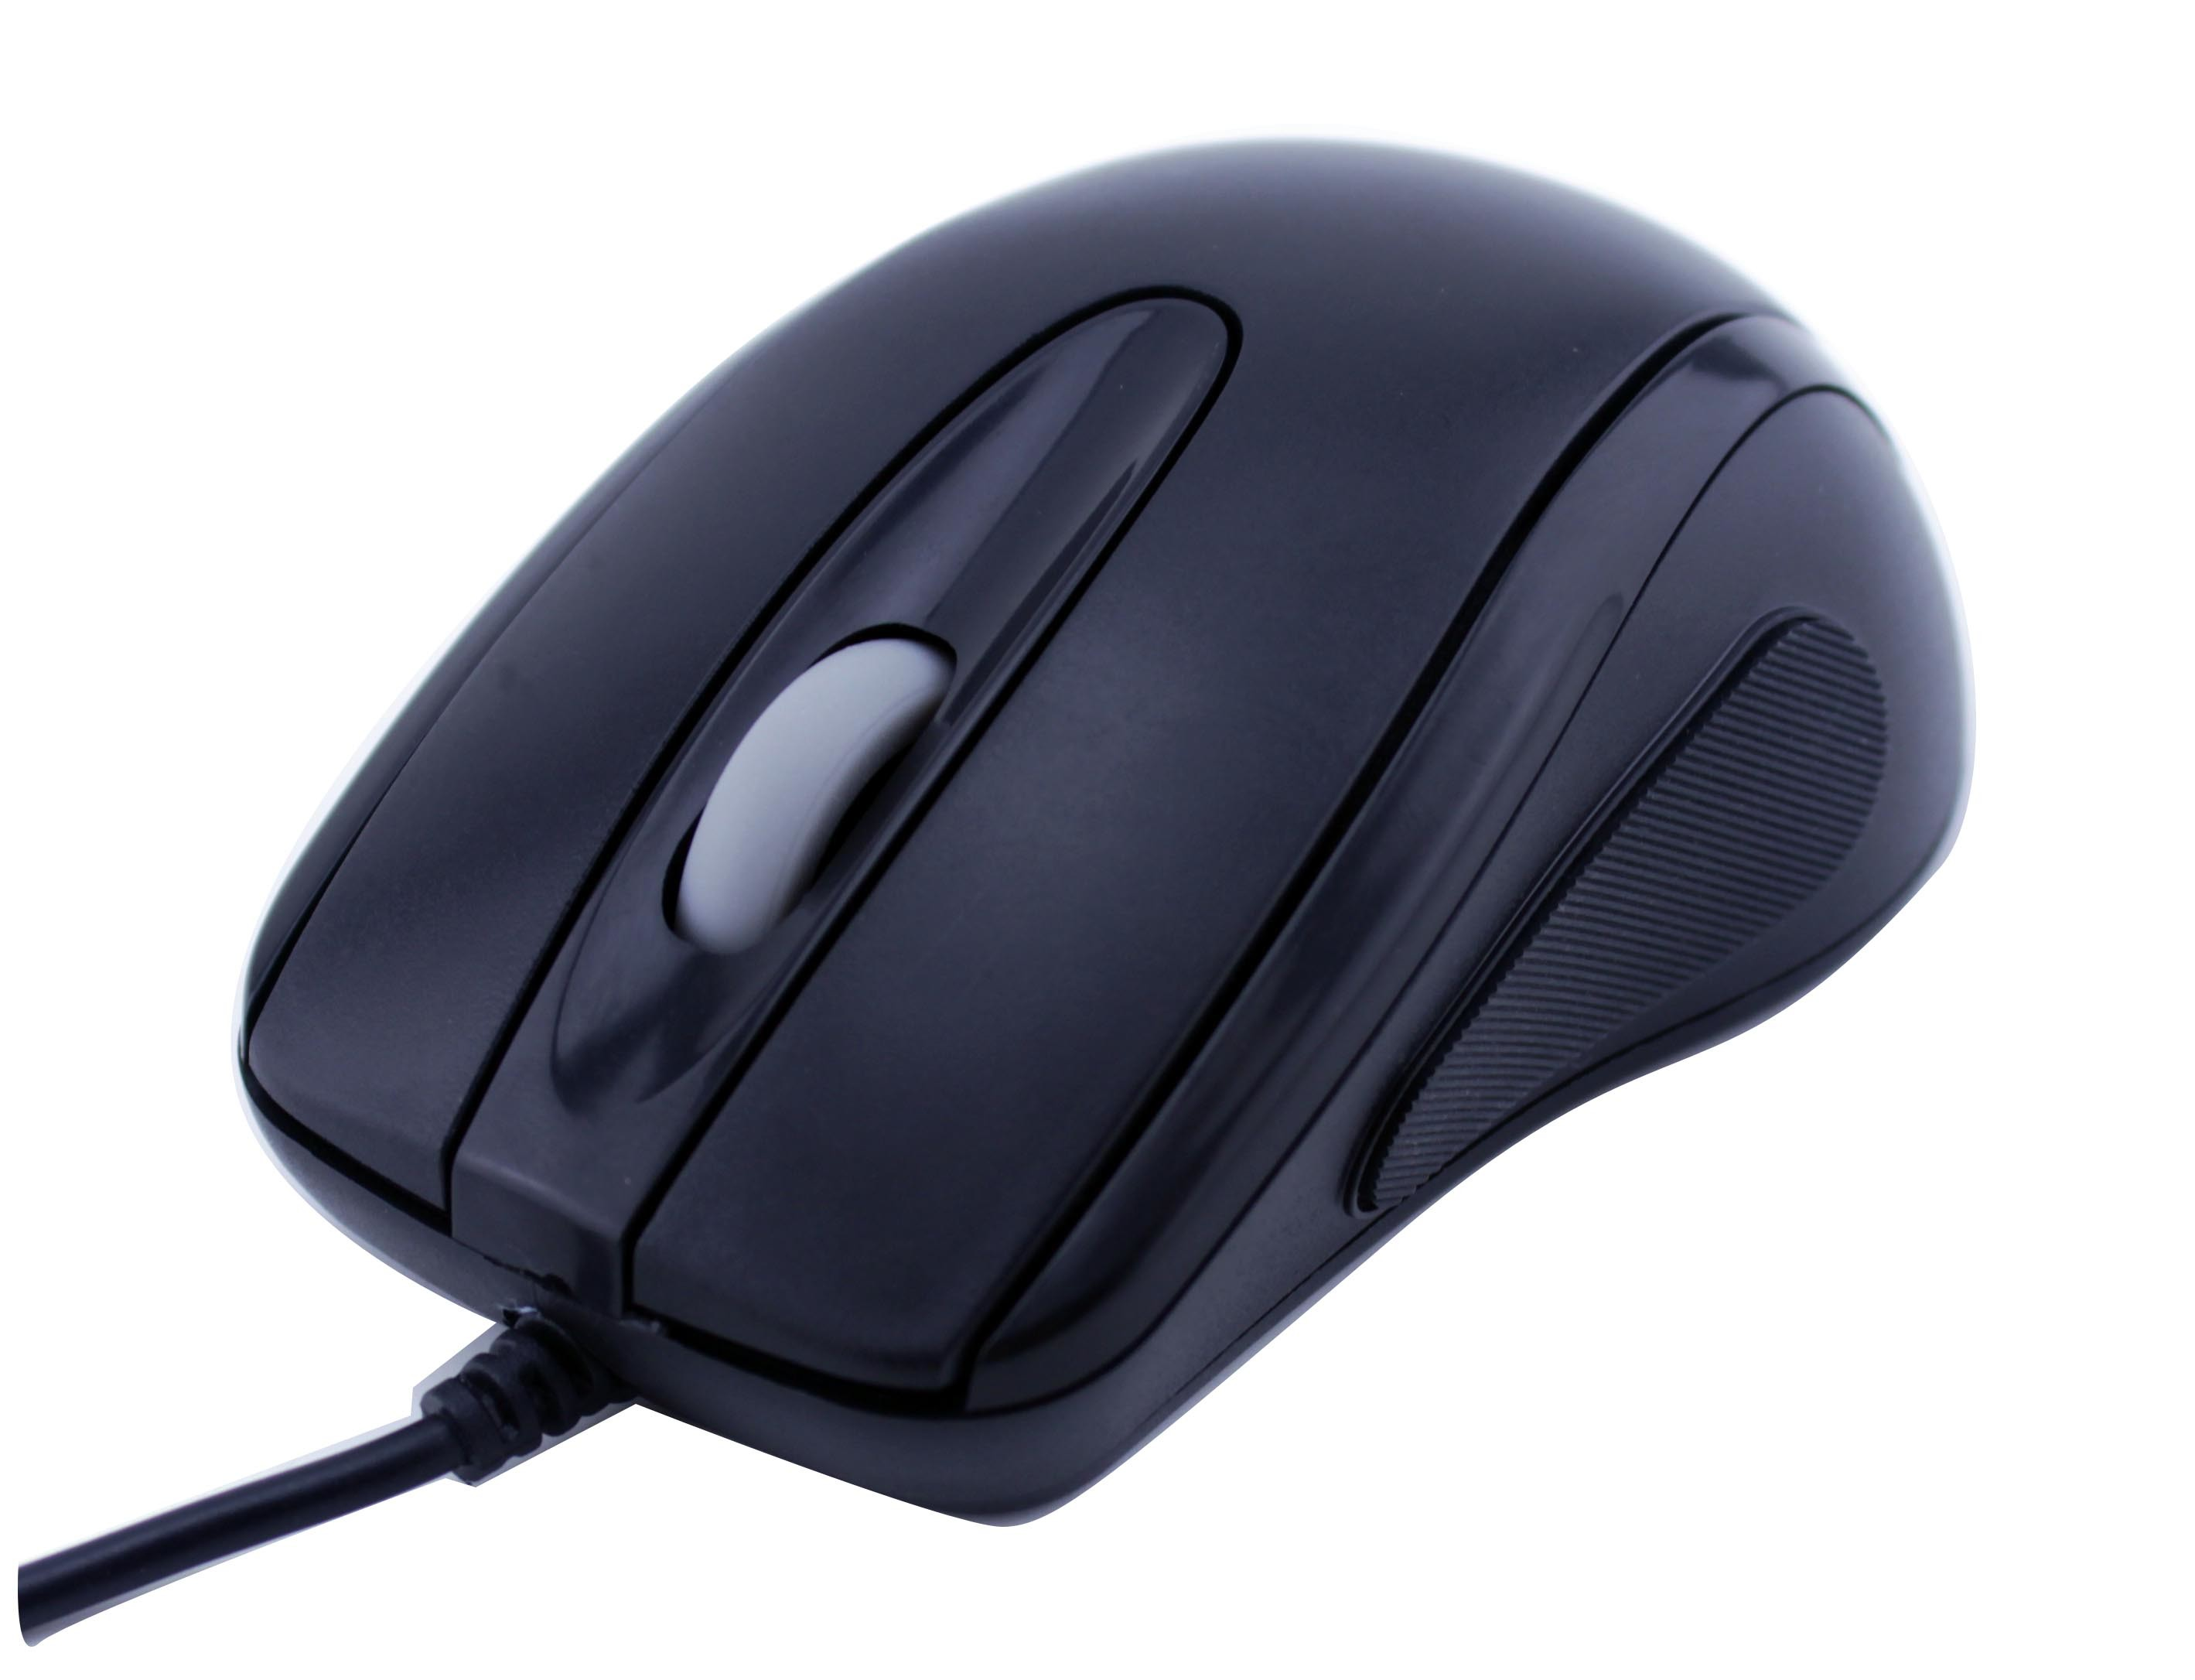 Souris d 39 ordinateur du nouveau mod le 2016 photo sur fr for Photo d ordinateur